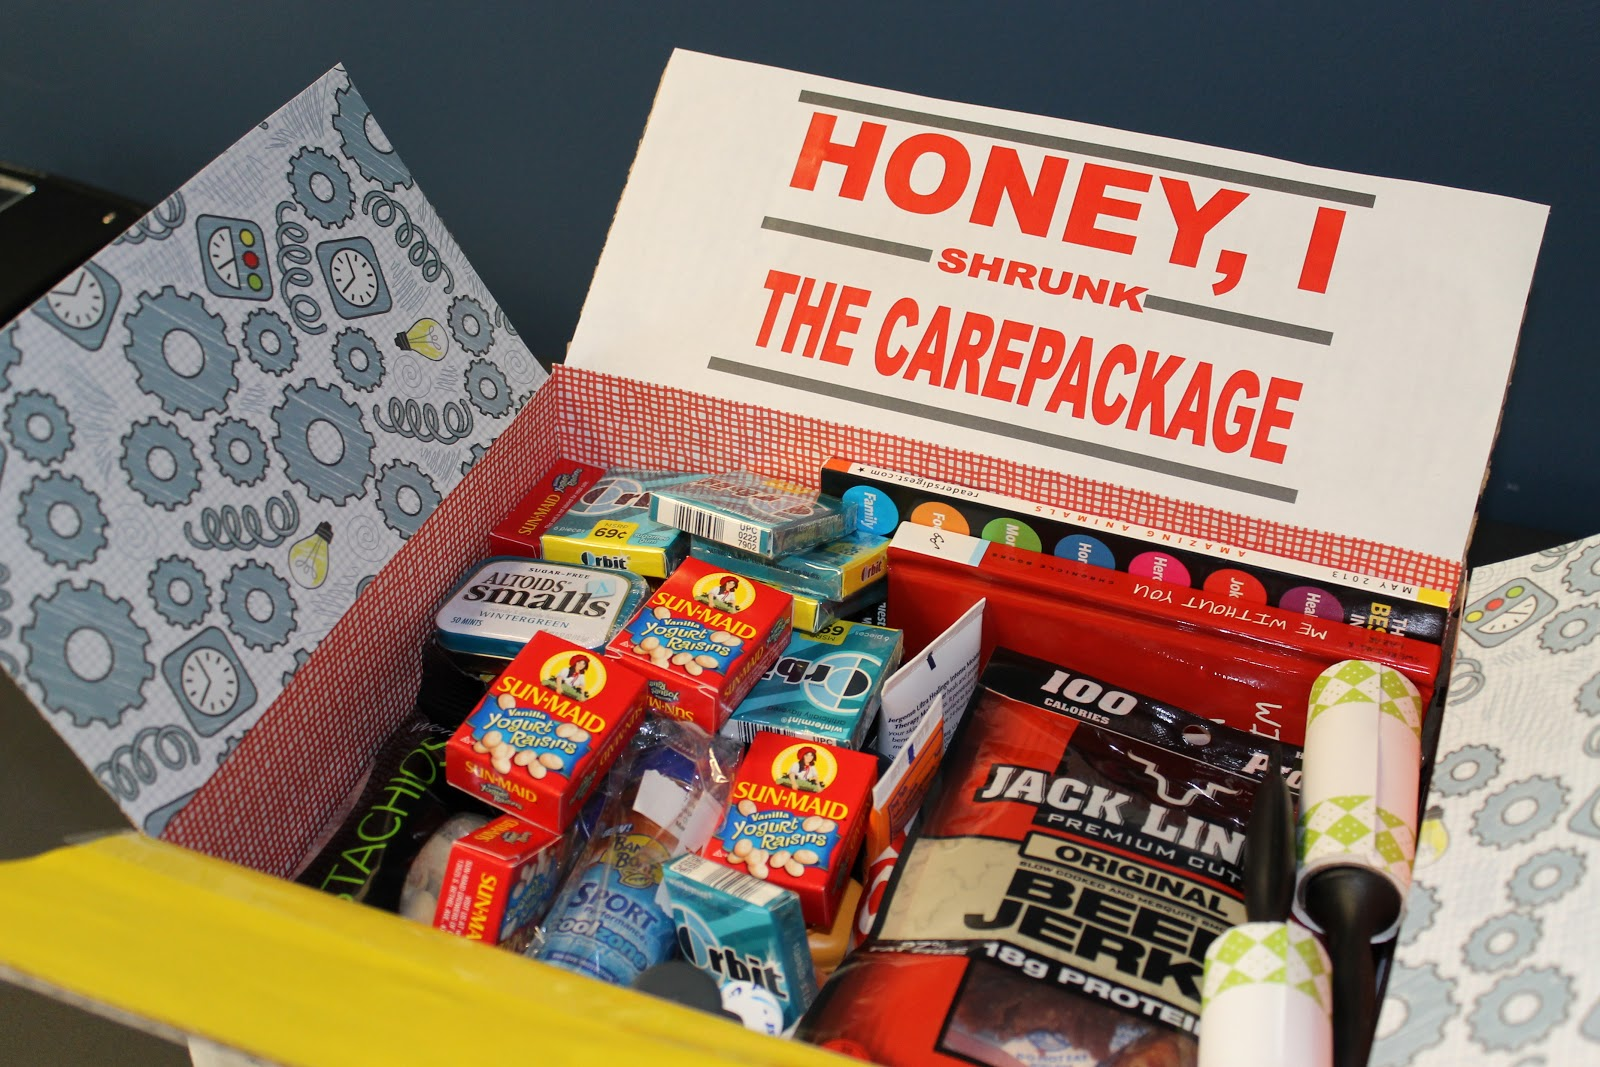 living in the moment honey i shrunk the care package